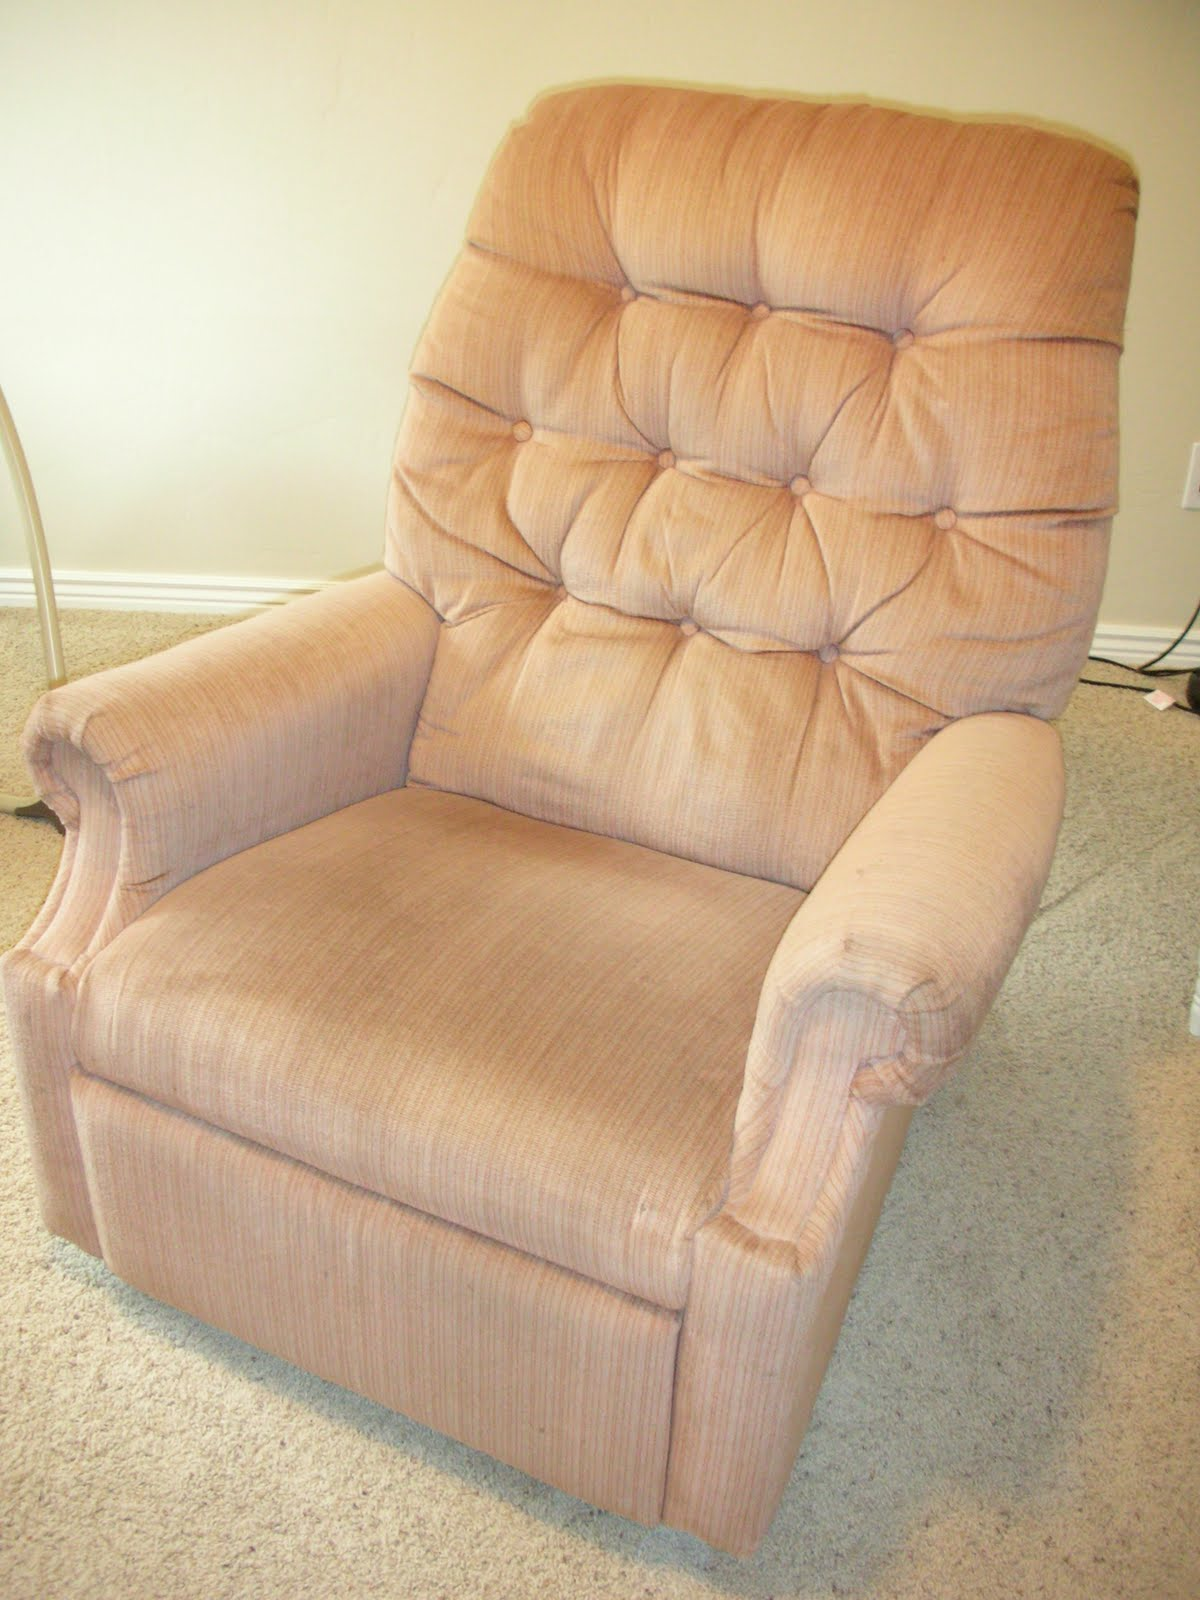 do it yourself divas: DIY: Reupholster An Old La-Z-Boy ...